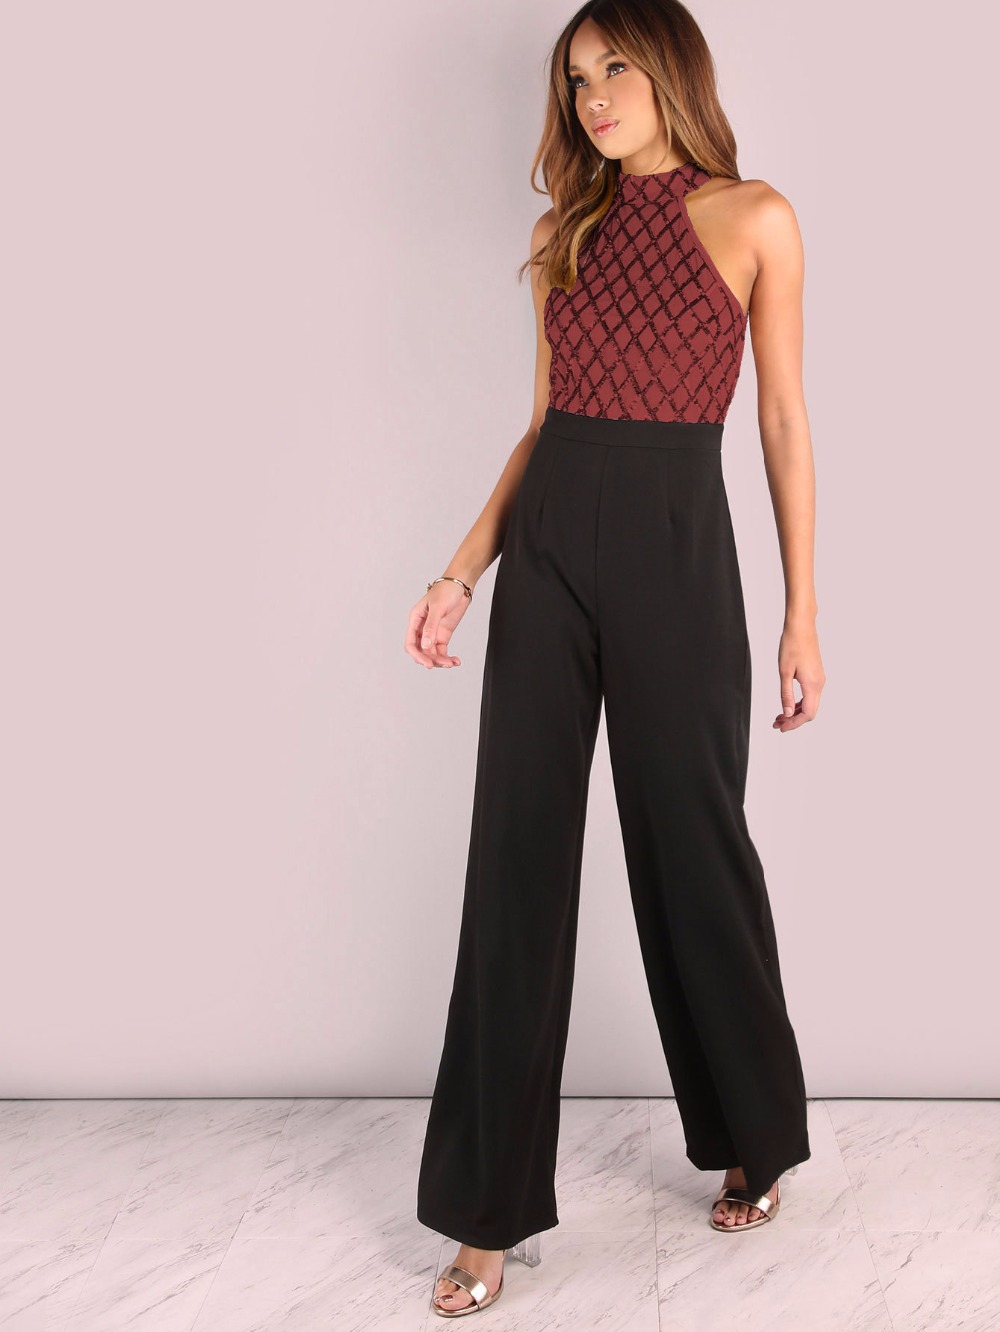 Women Sexy Halter Cold Shoulder Plaid Sequin Top Patchwork Jumpsuit Elegant Casual Party Long Pants Boot Cut Jumpsuit Back Zip 11